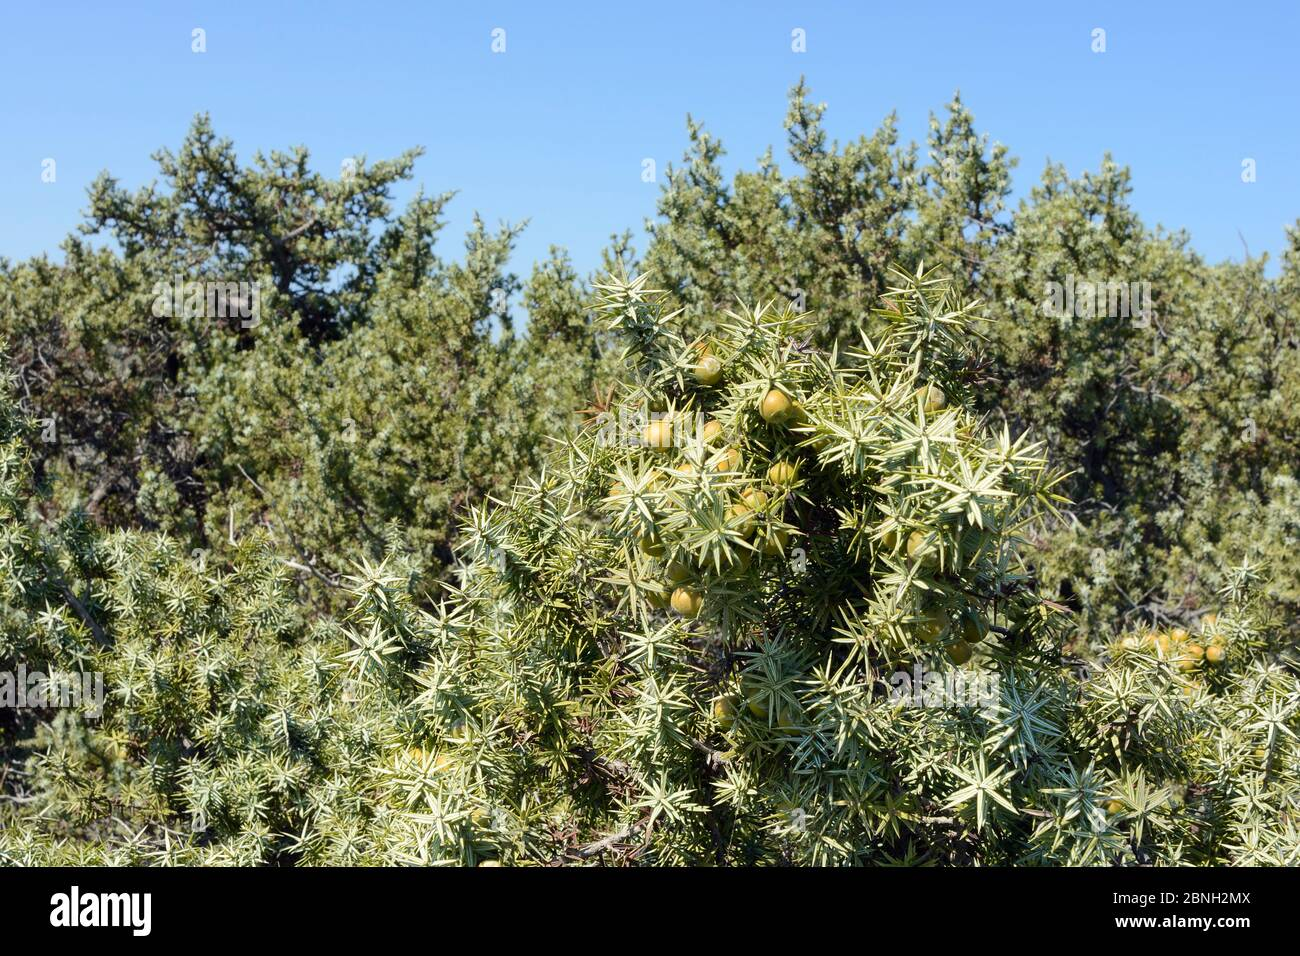 Large-fruited juniper (Juniperus macrocarpa), with ripening seed cones in coastal maquis scrubland, Kos, Dodecanese Islands, Greece, August 2013. Stock Photo